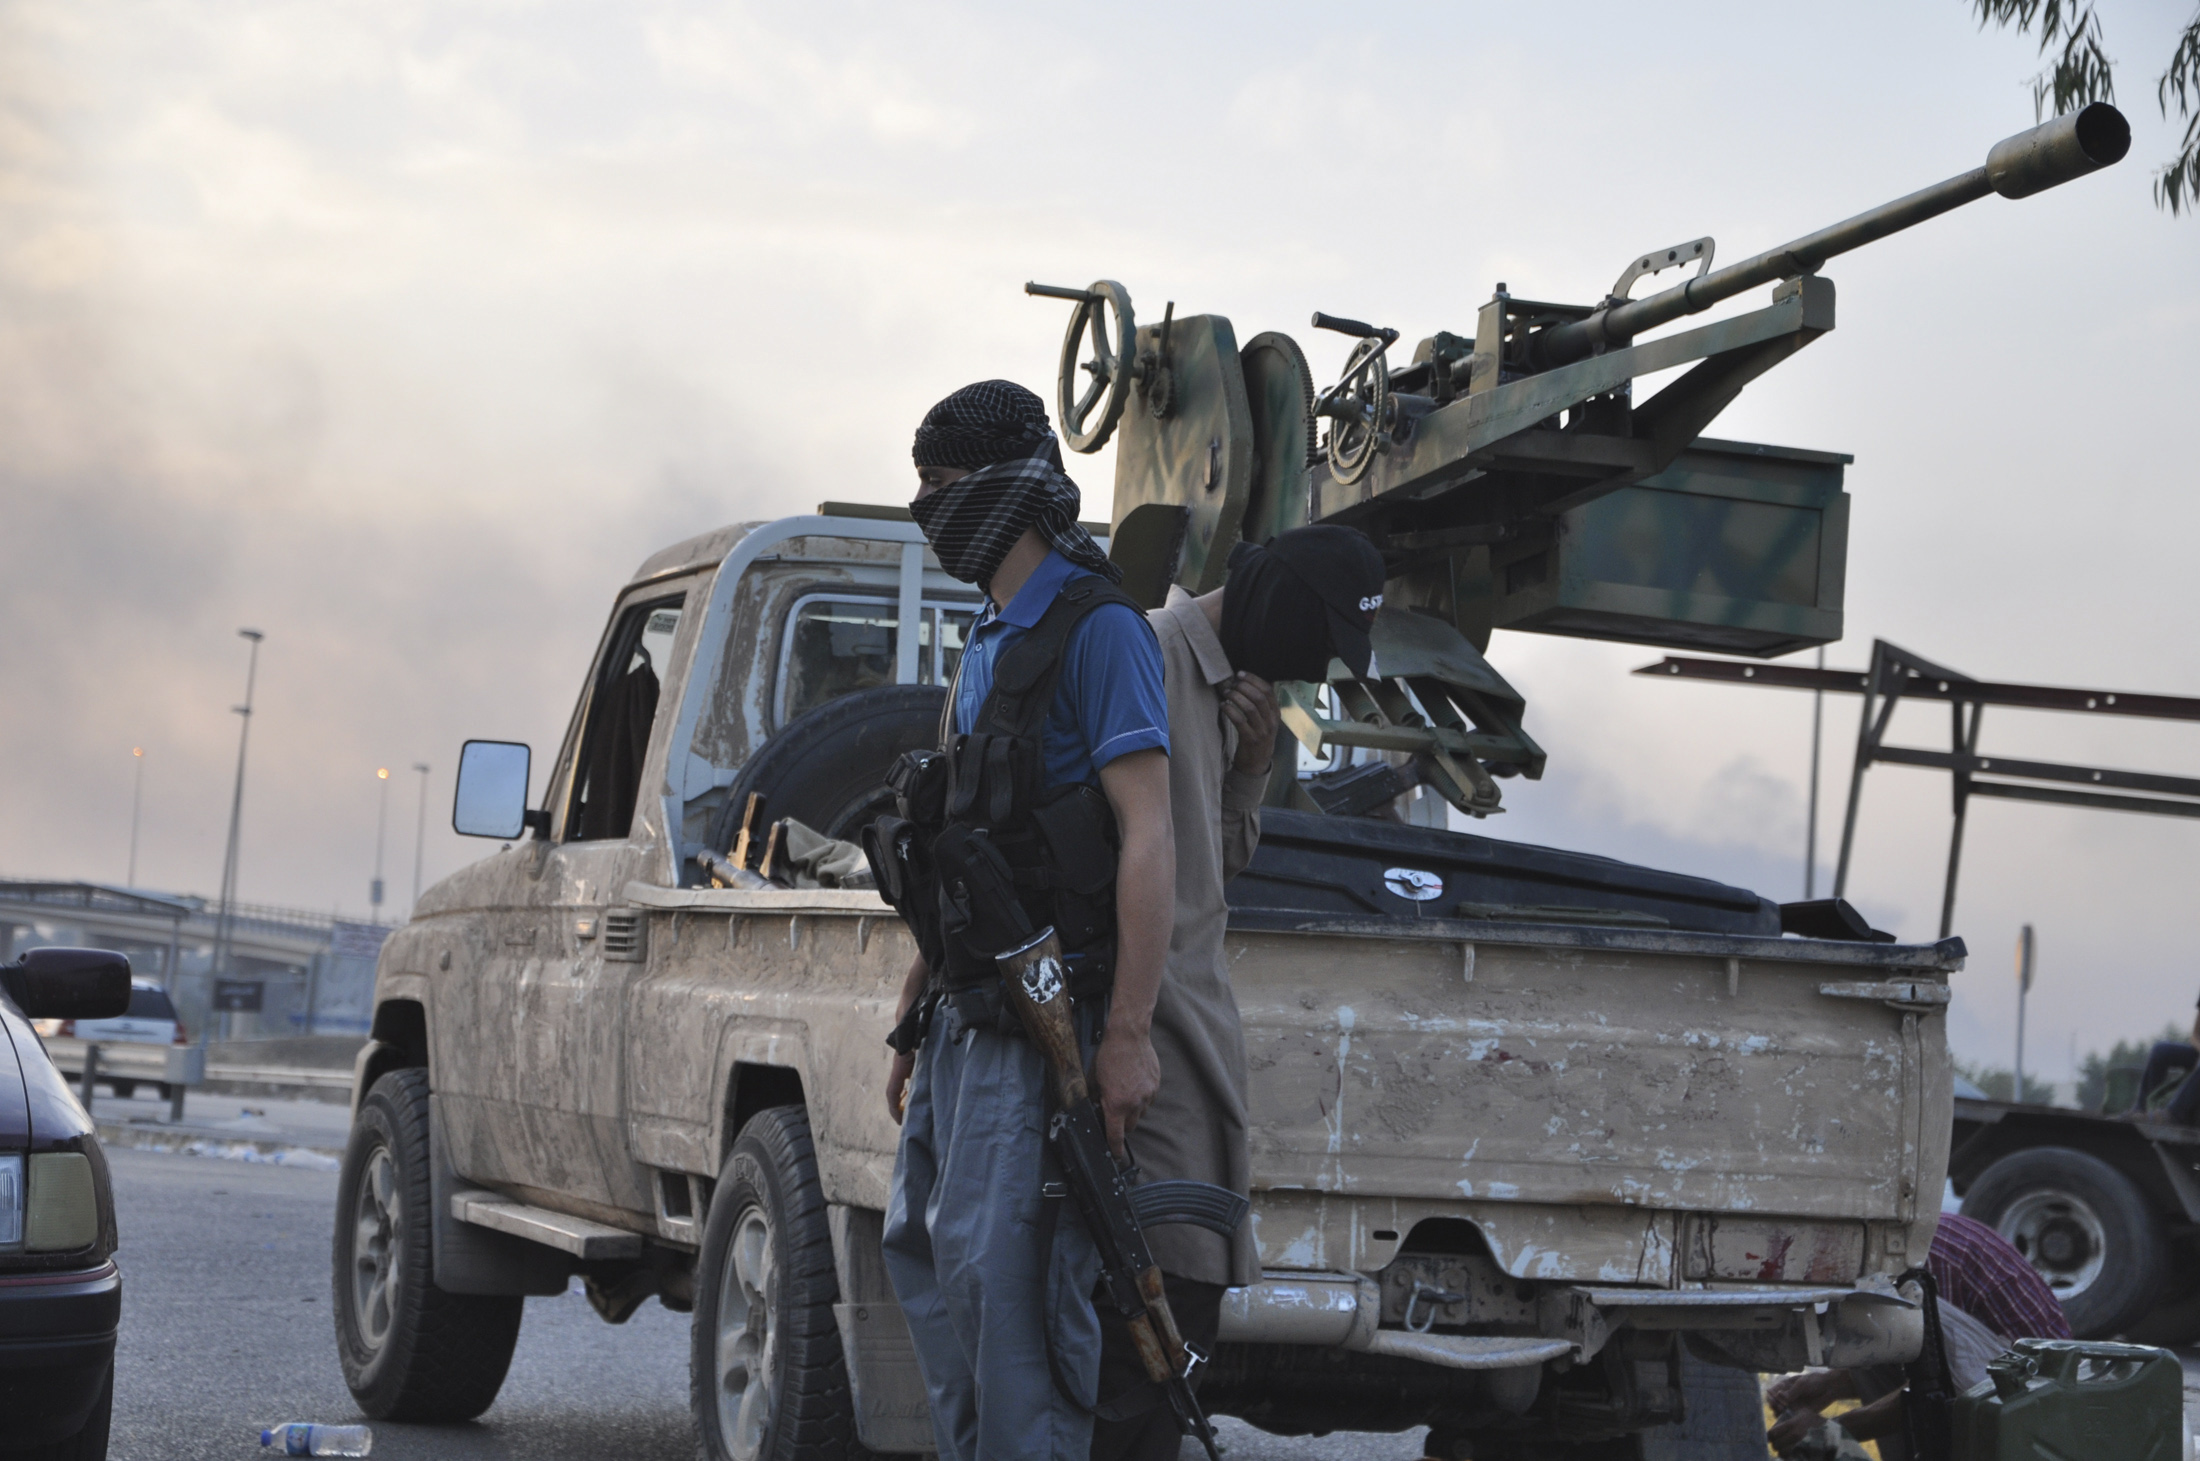 ISIS fighters stand guard at a checkpoint in the northern Iraq city of Mosul, June 11, 2014.